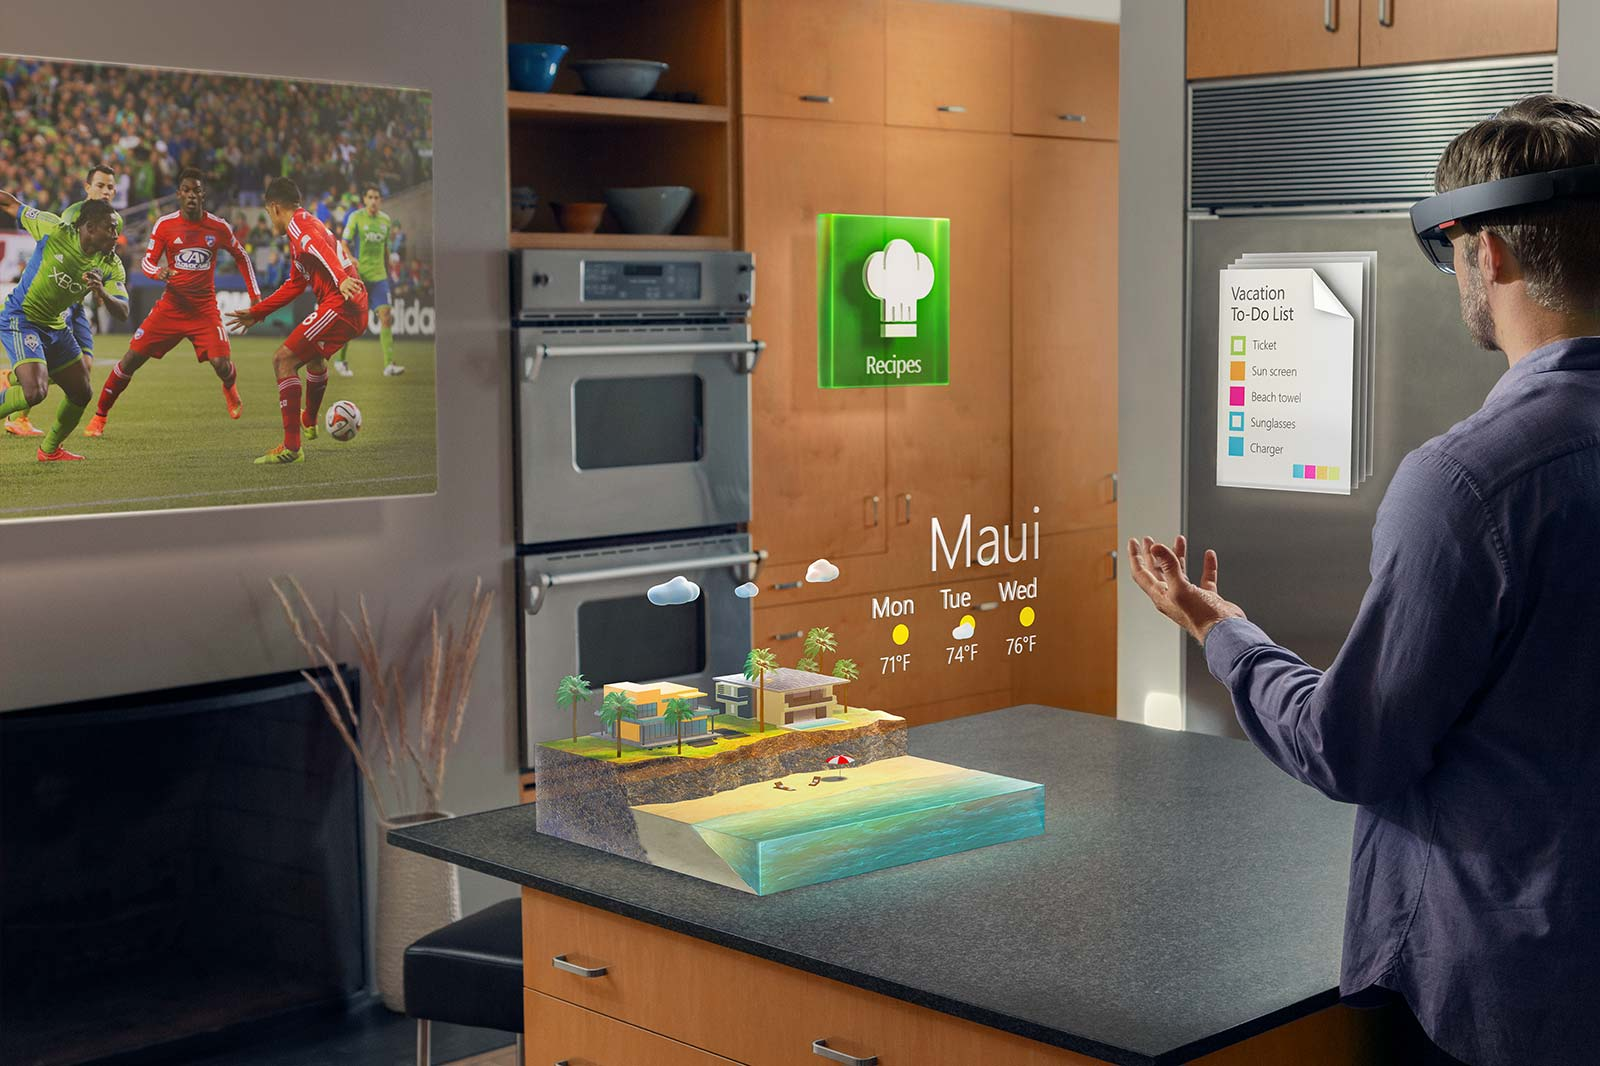 This image shows possible ways in which the HoloLens will be used in everyday life.